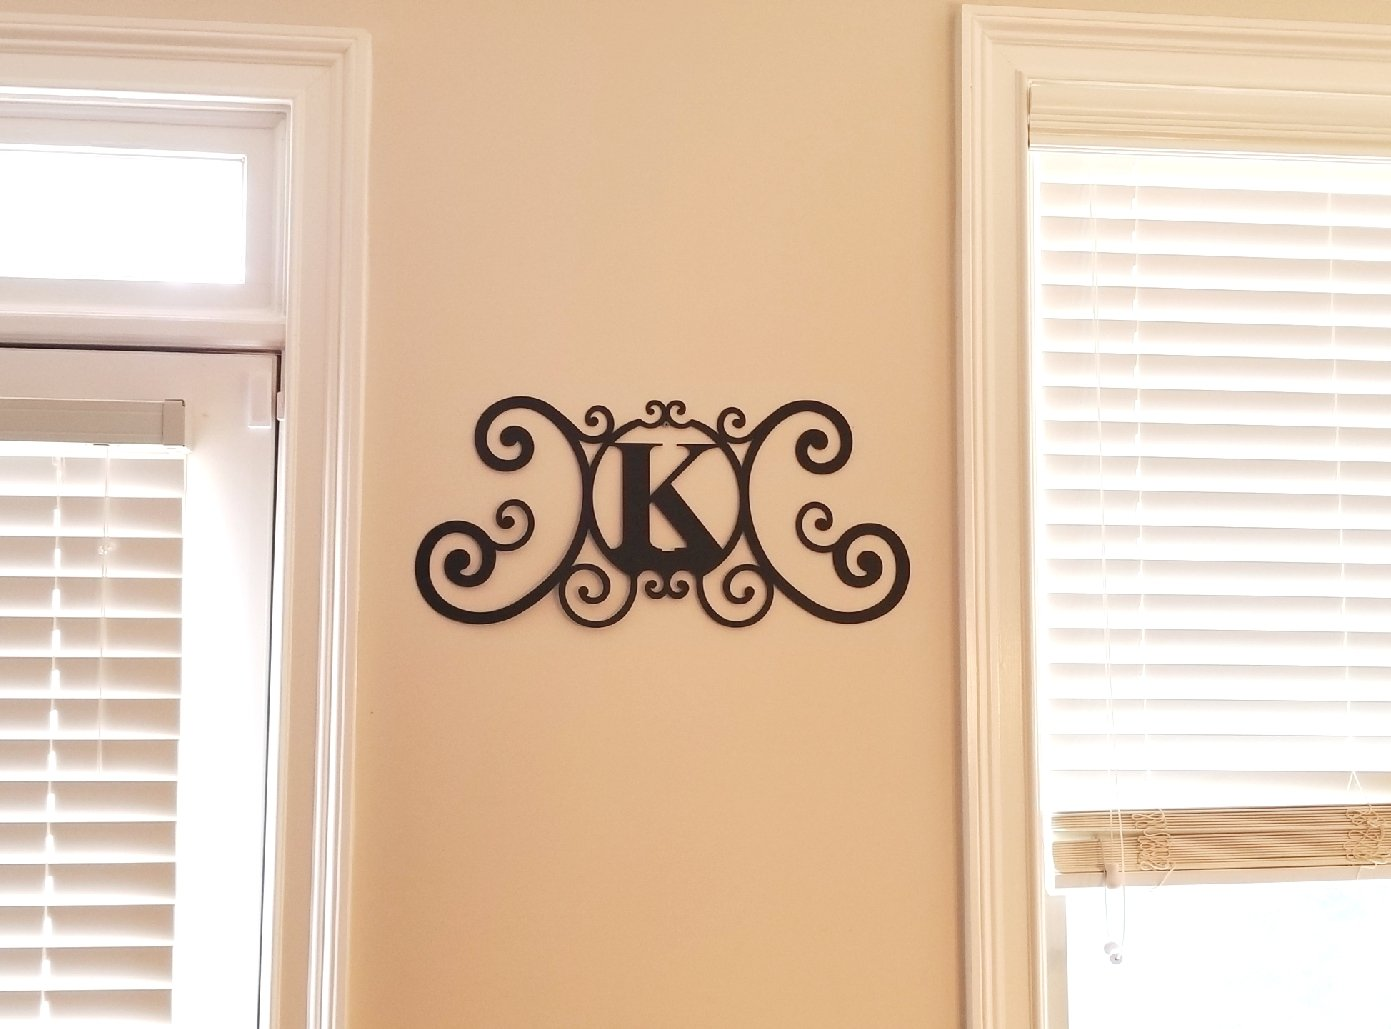 Amazon.com: Bookishbunny Monogram Initial Letter A-Z Wrought Iron ...